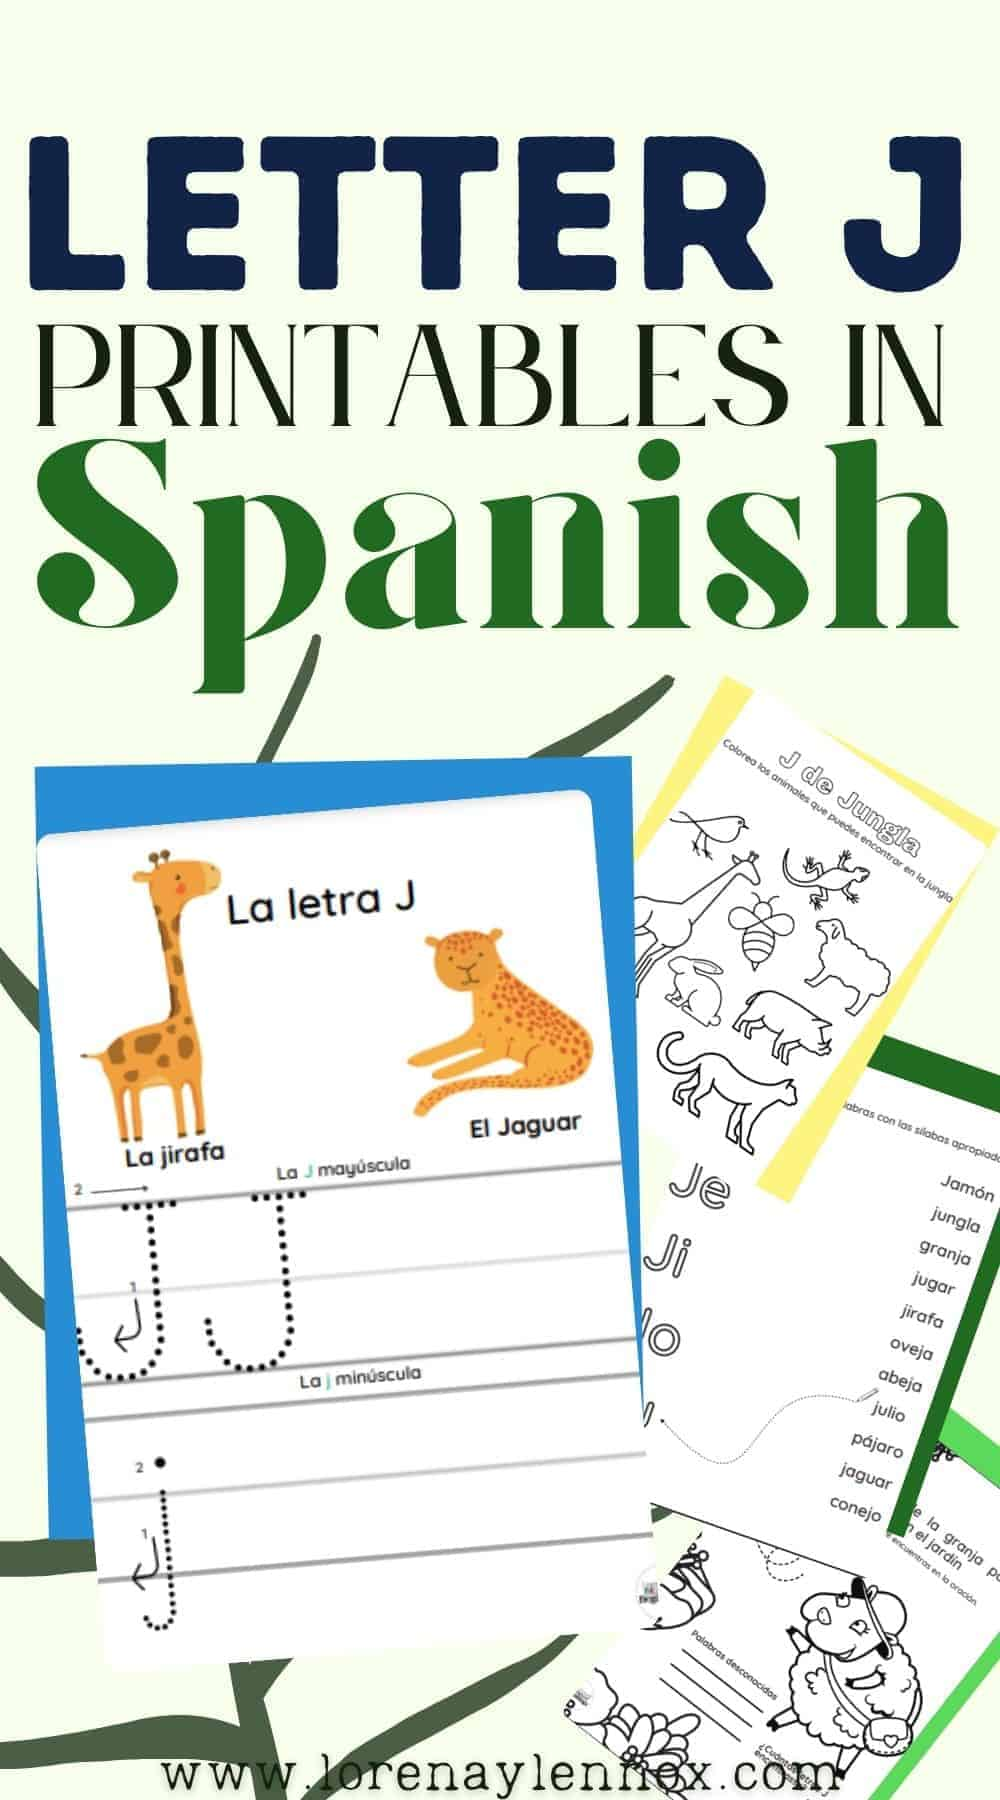 Four FREE letter J printables in Spanish for children ages 3-6. These activities are perfect for the classroom or for fun at home